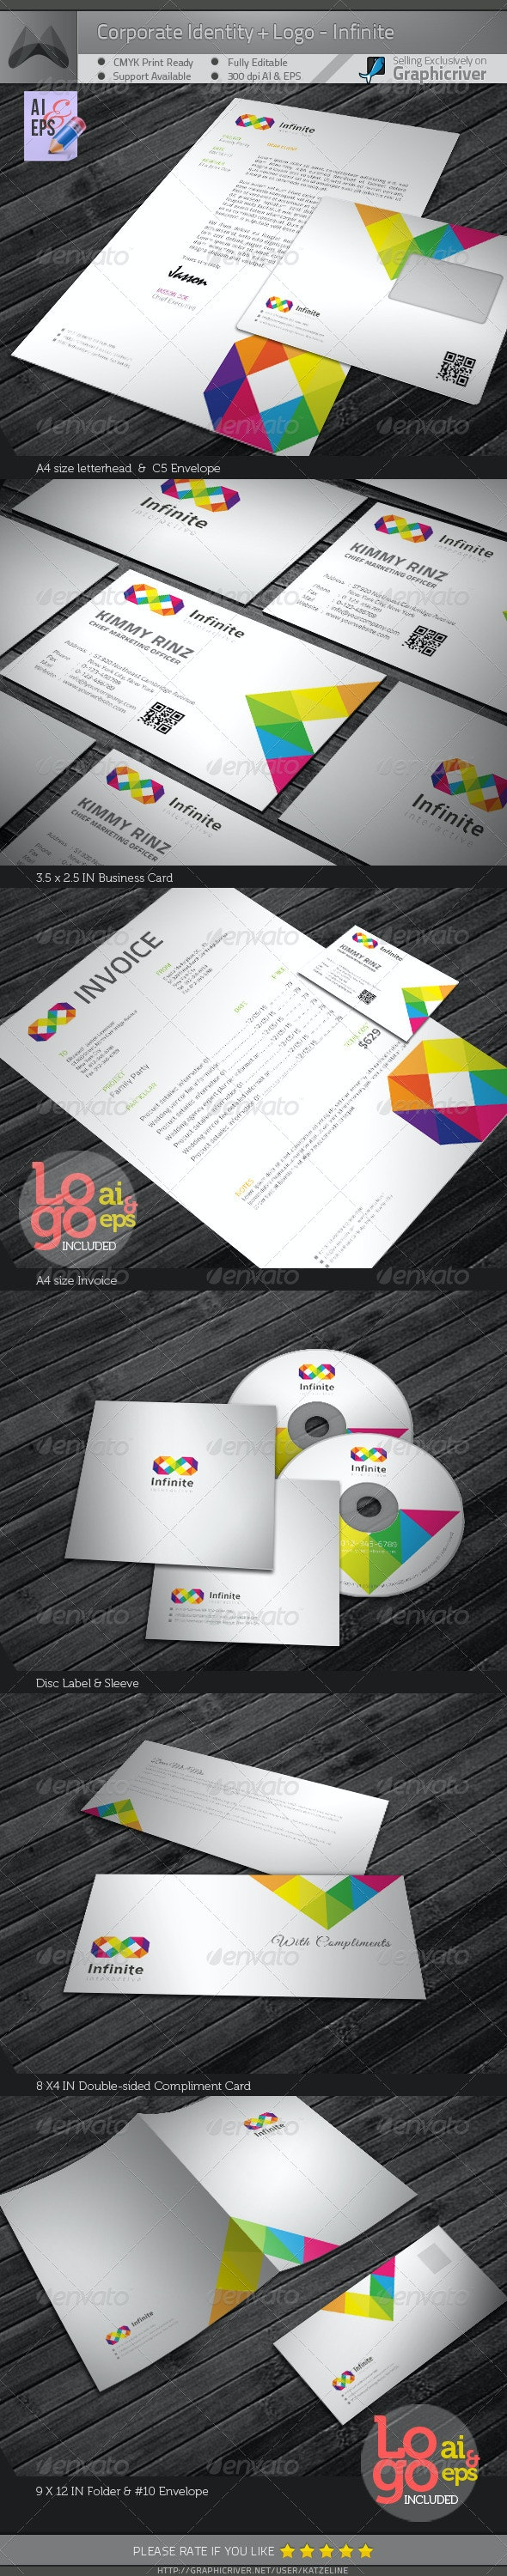 Corporate Identity Package - Infinite - Stationery Print Templates